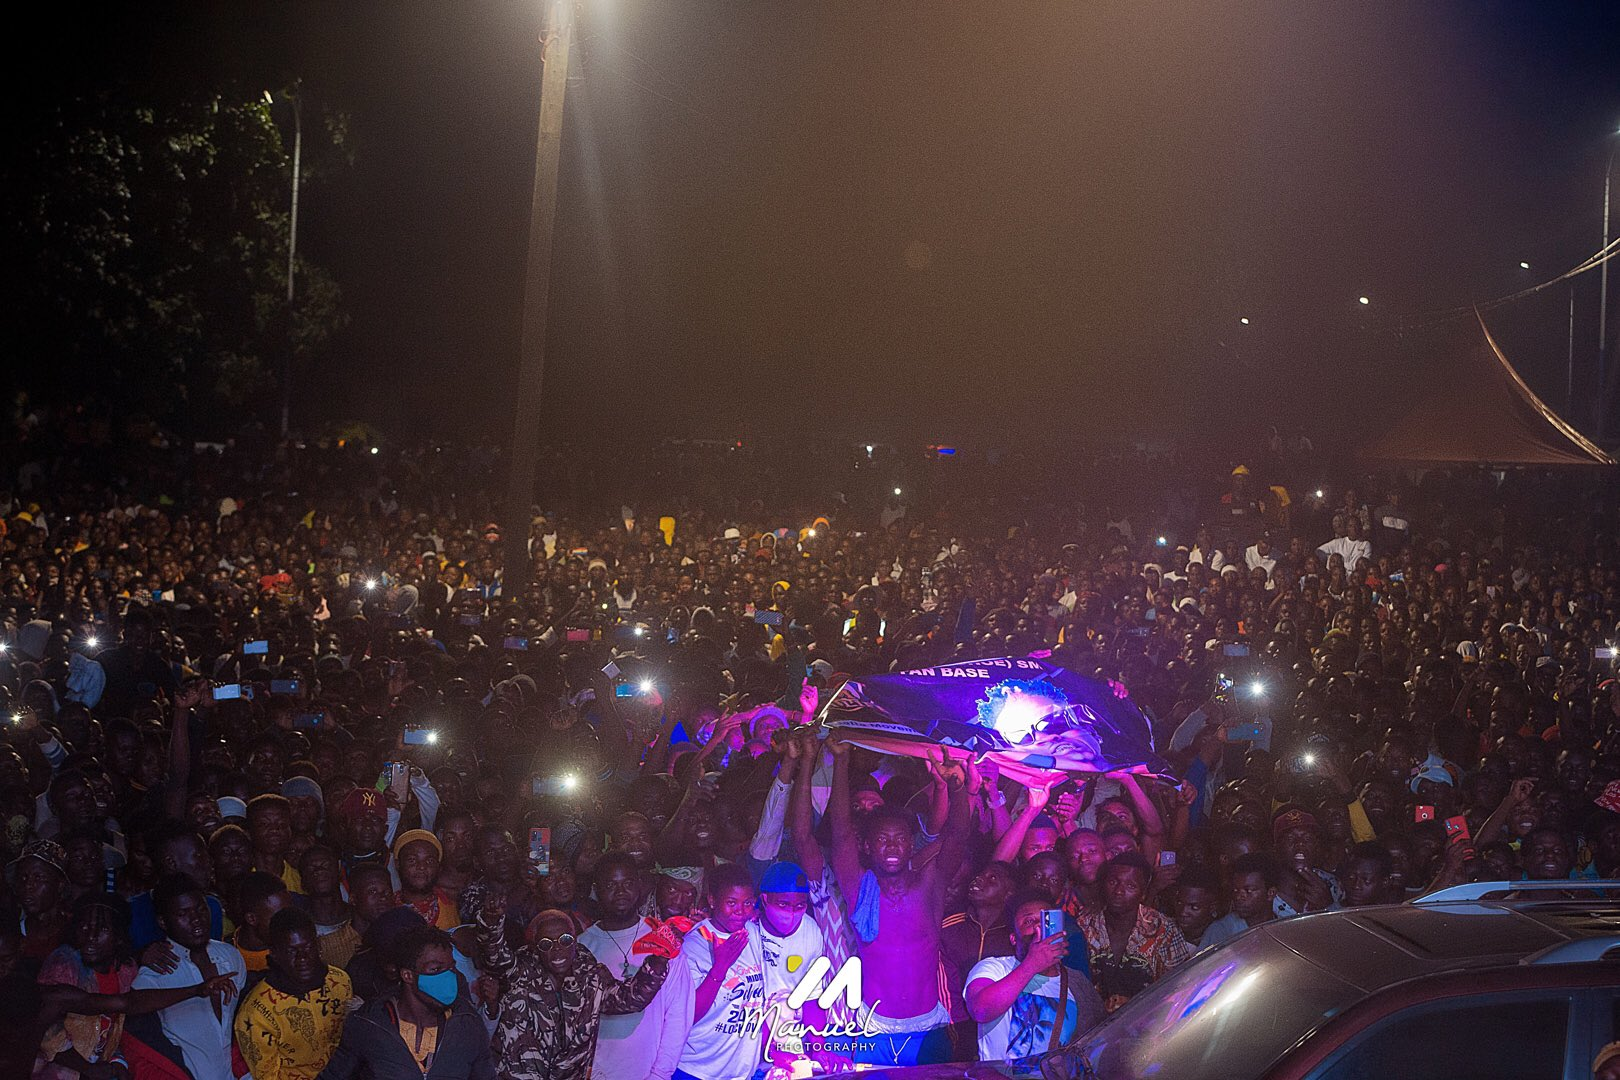 MP-elect for Hohoe, John Peter Amewus' victory party in 2020 December: Mammoth crowd at Hohoe as Shatta Wale performs | Adomonline.com